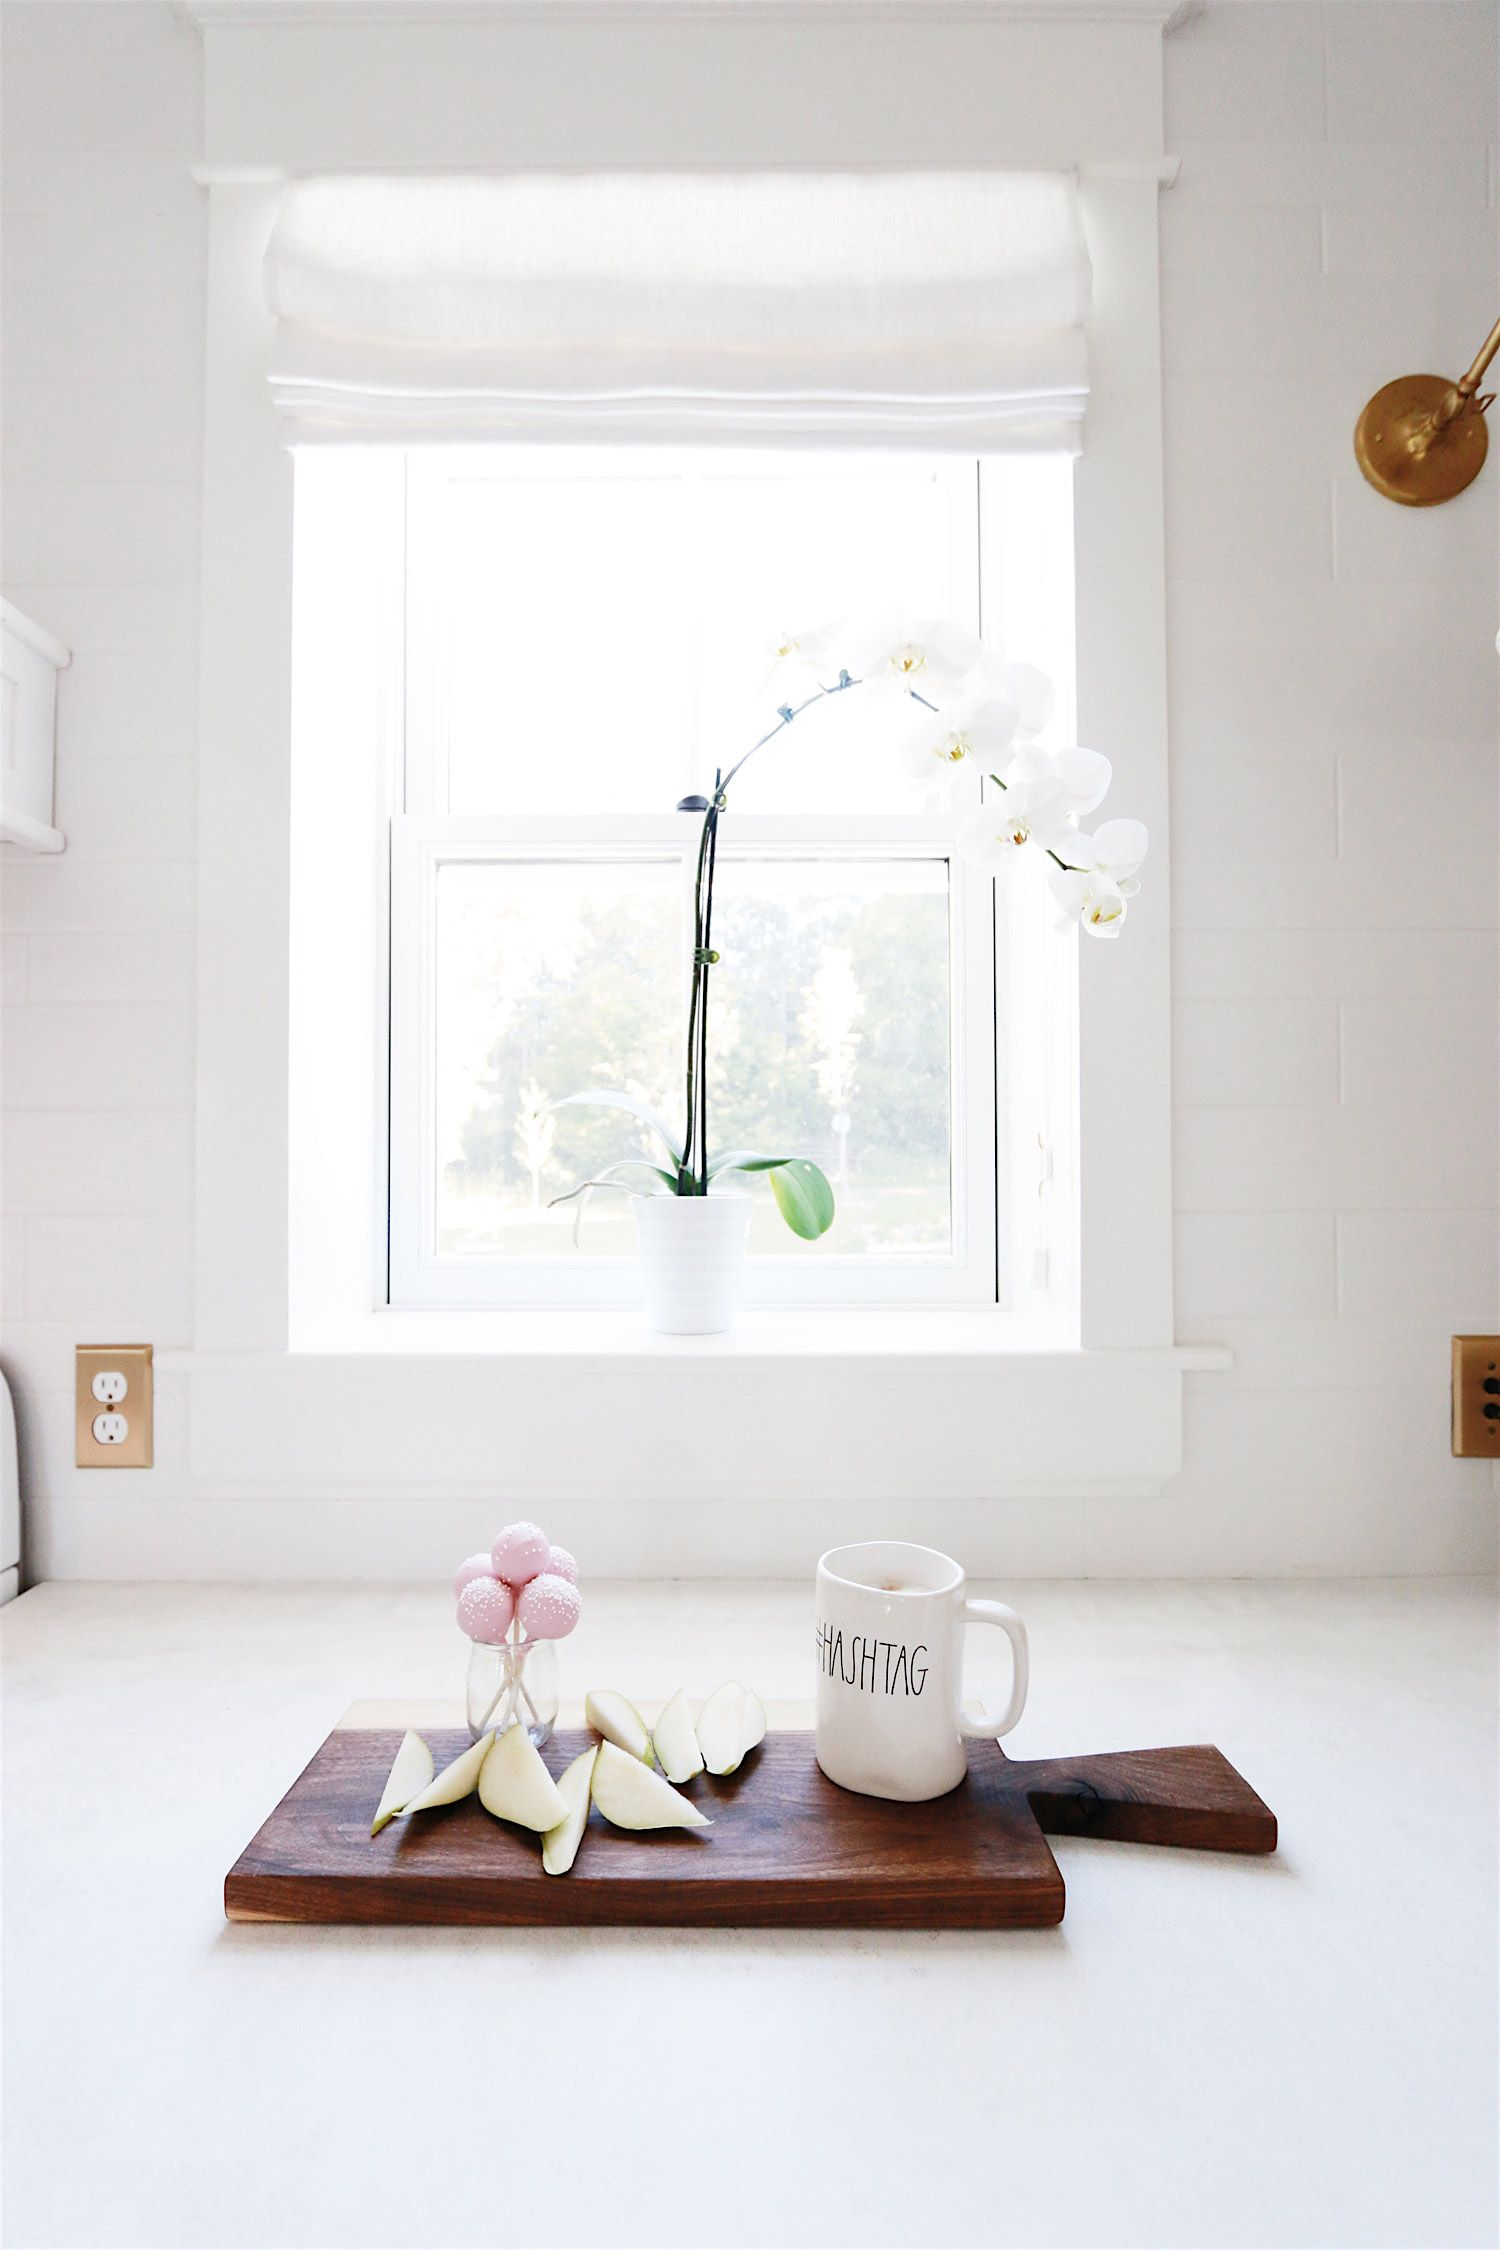 Kitchen reveal: Enter to win the most ahhhmazing faucet in the ...